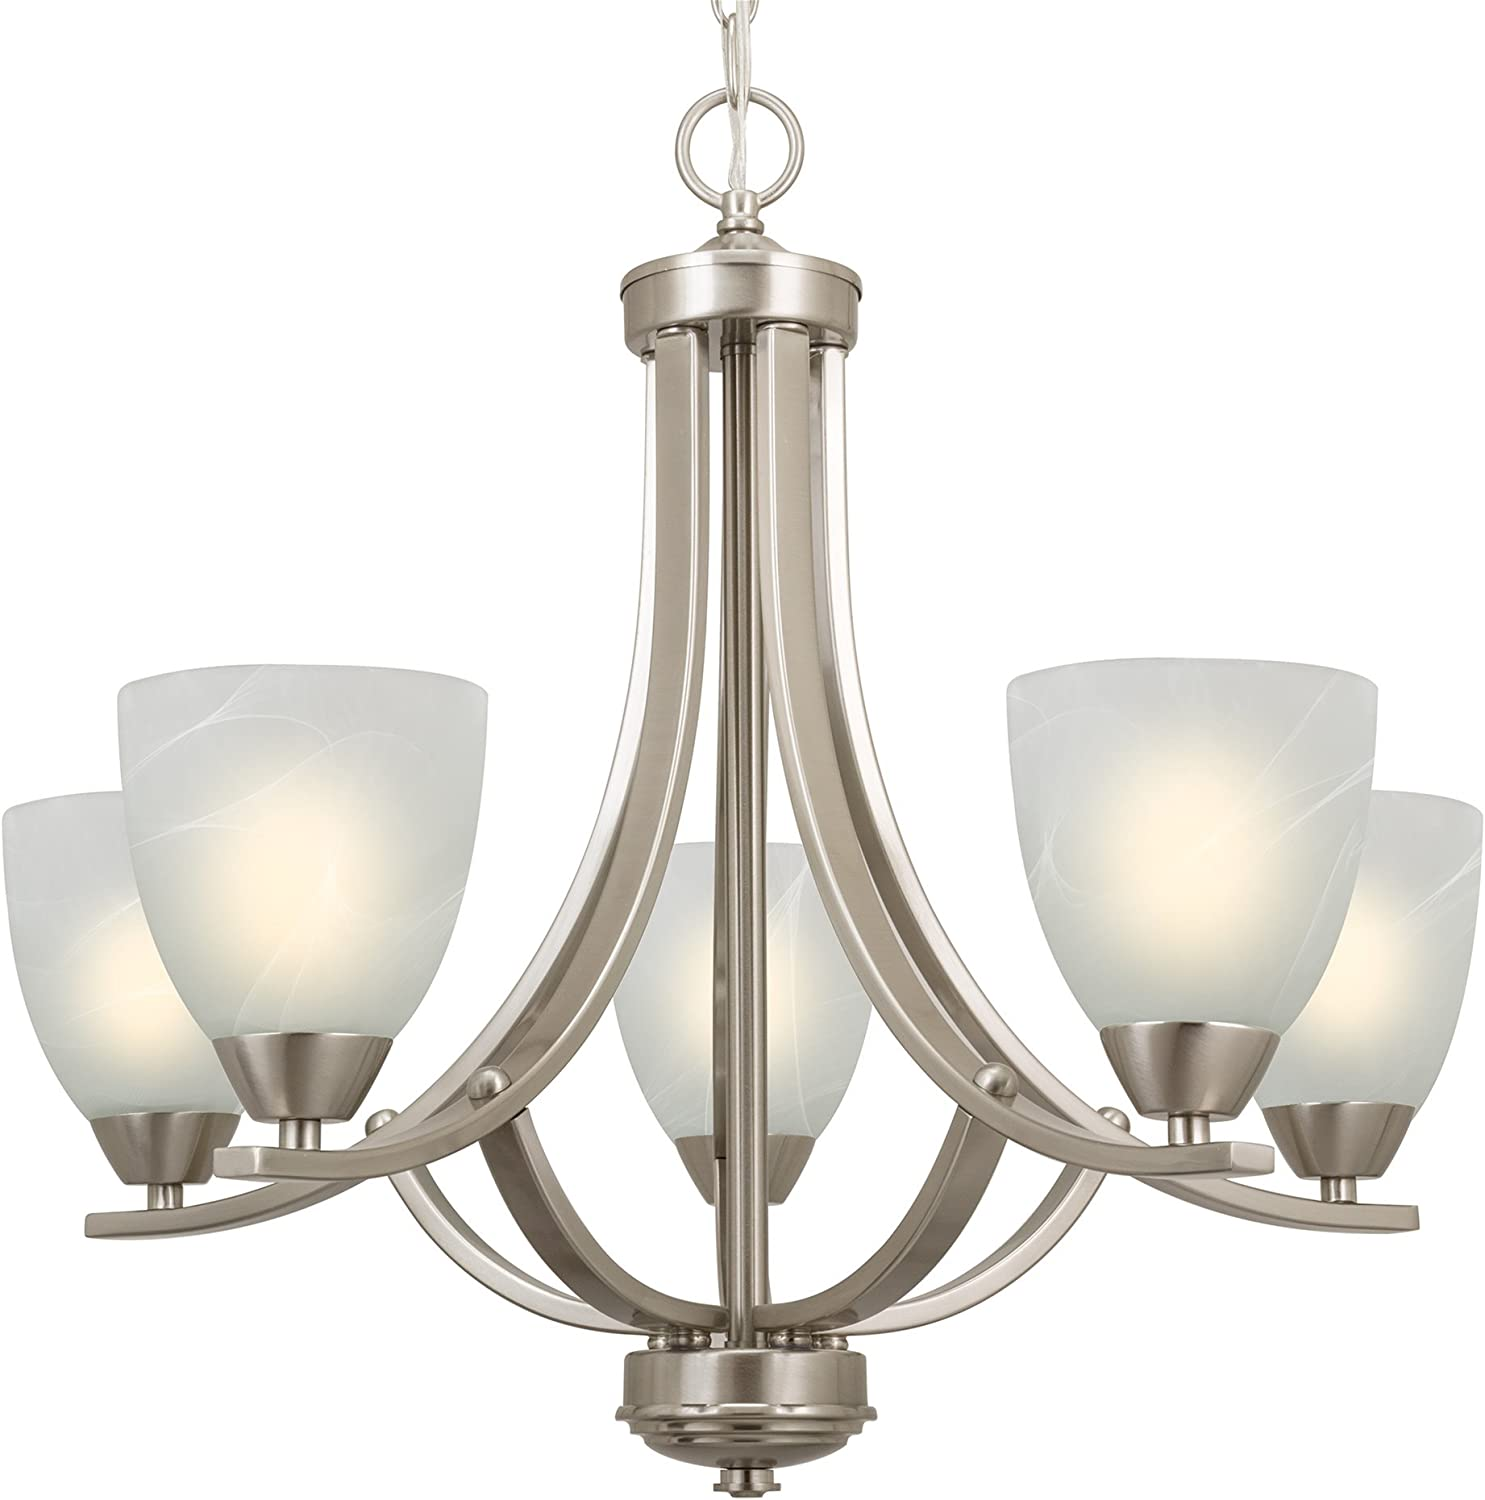 "B01M7PWXLD Kira Home Weston 24"" Contemporary 5-Light Large Chandelier + Alabaster Glass Shades, Adjustable Chain, Brushed Nickel Finish 71GK9voio-L"